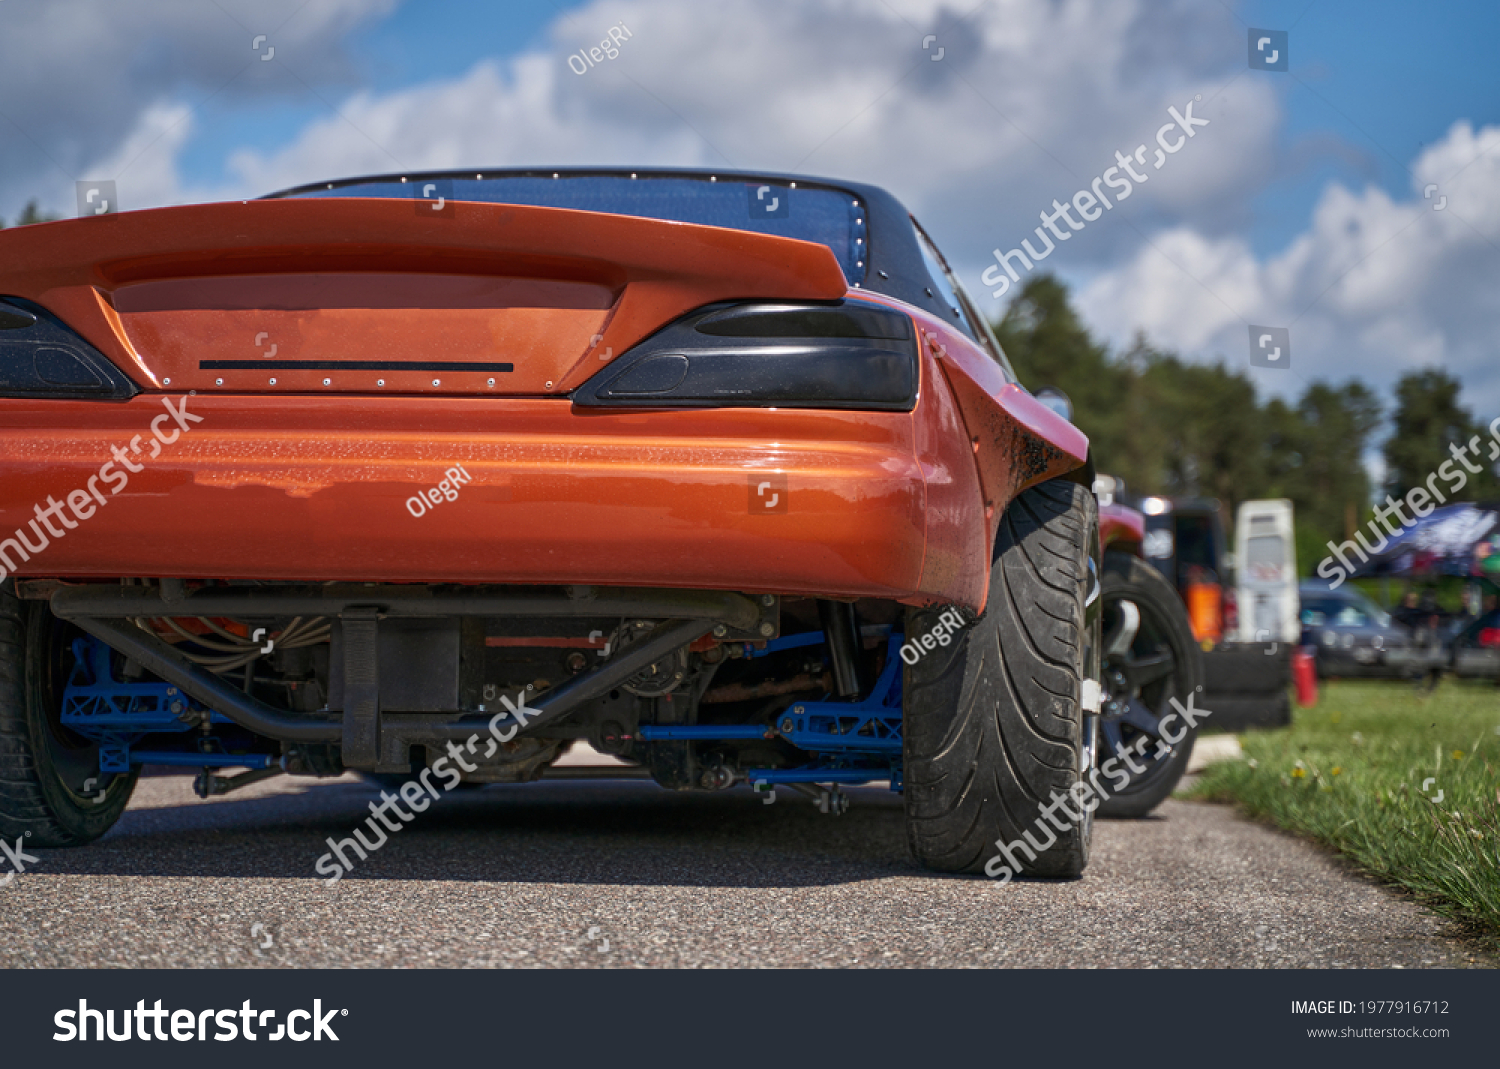 Power drifting car from side. back view #1977916712